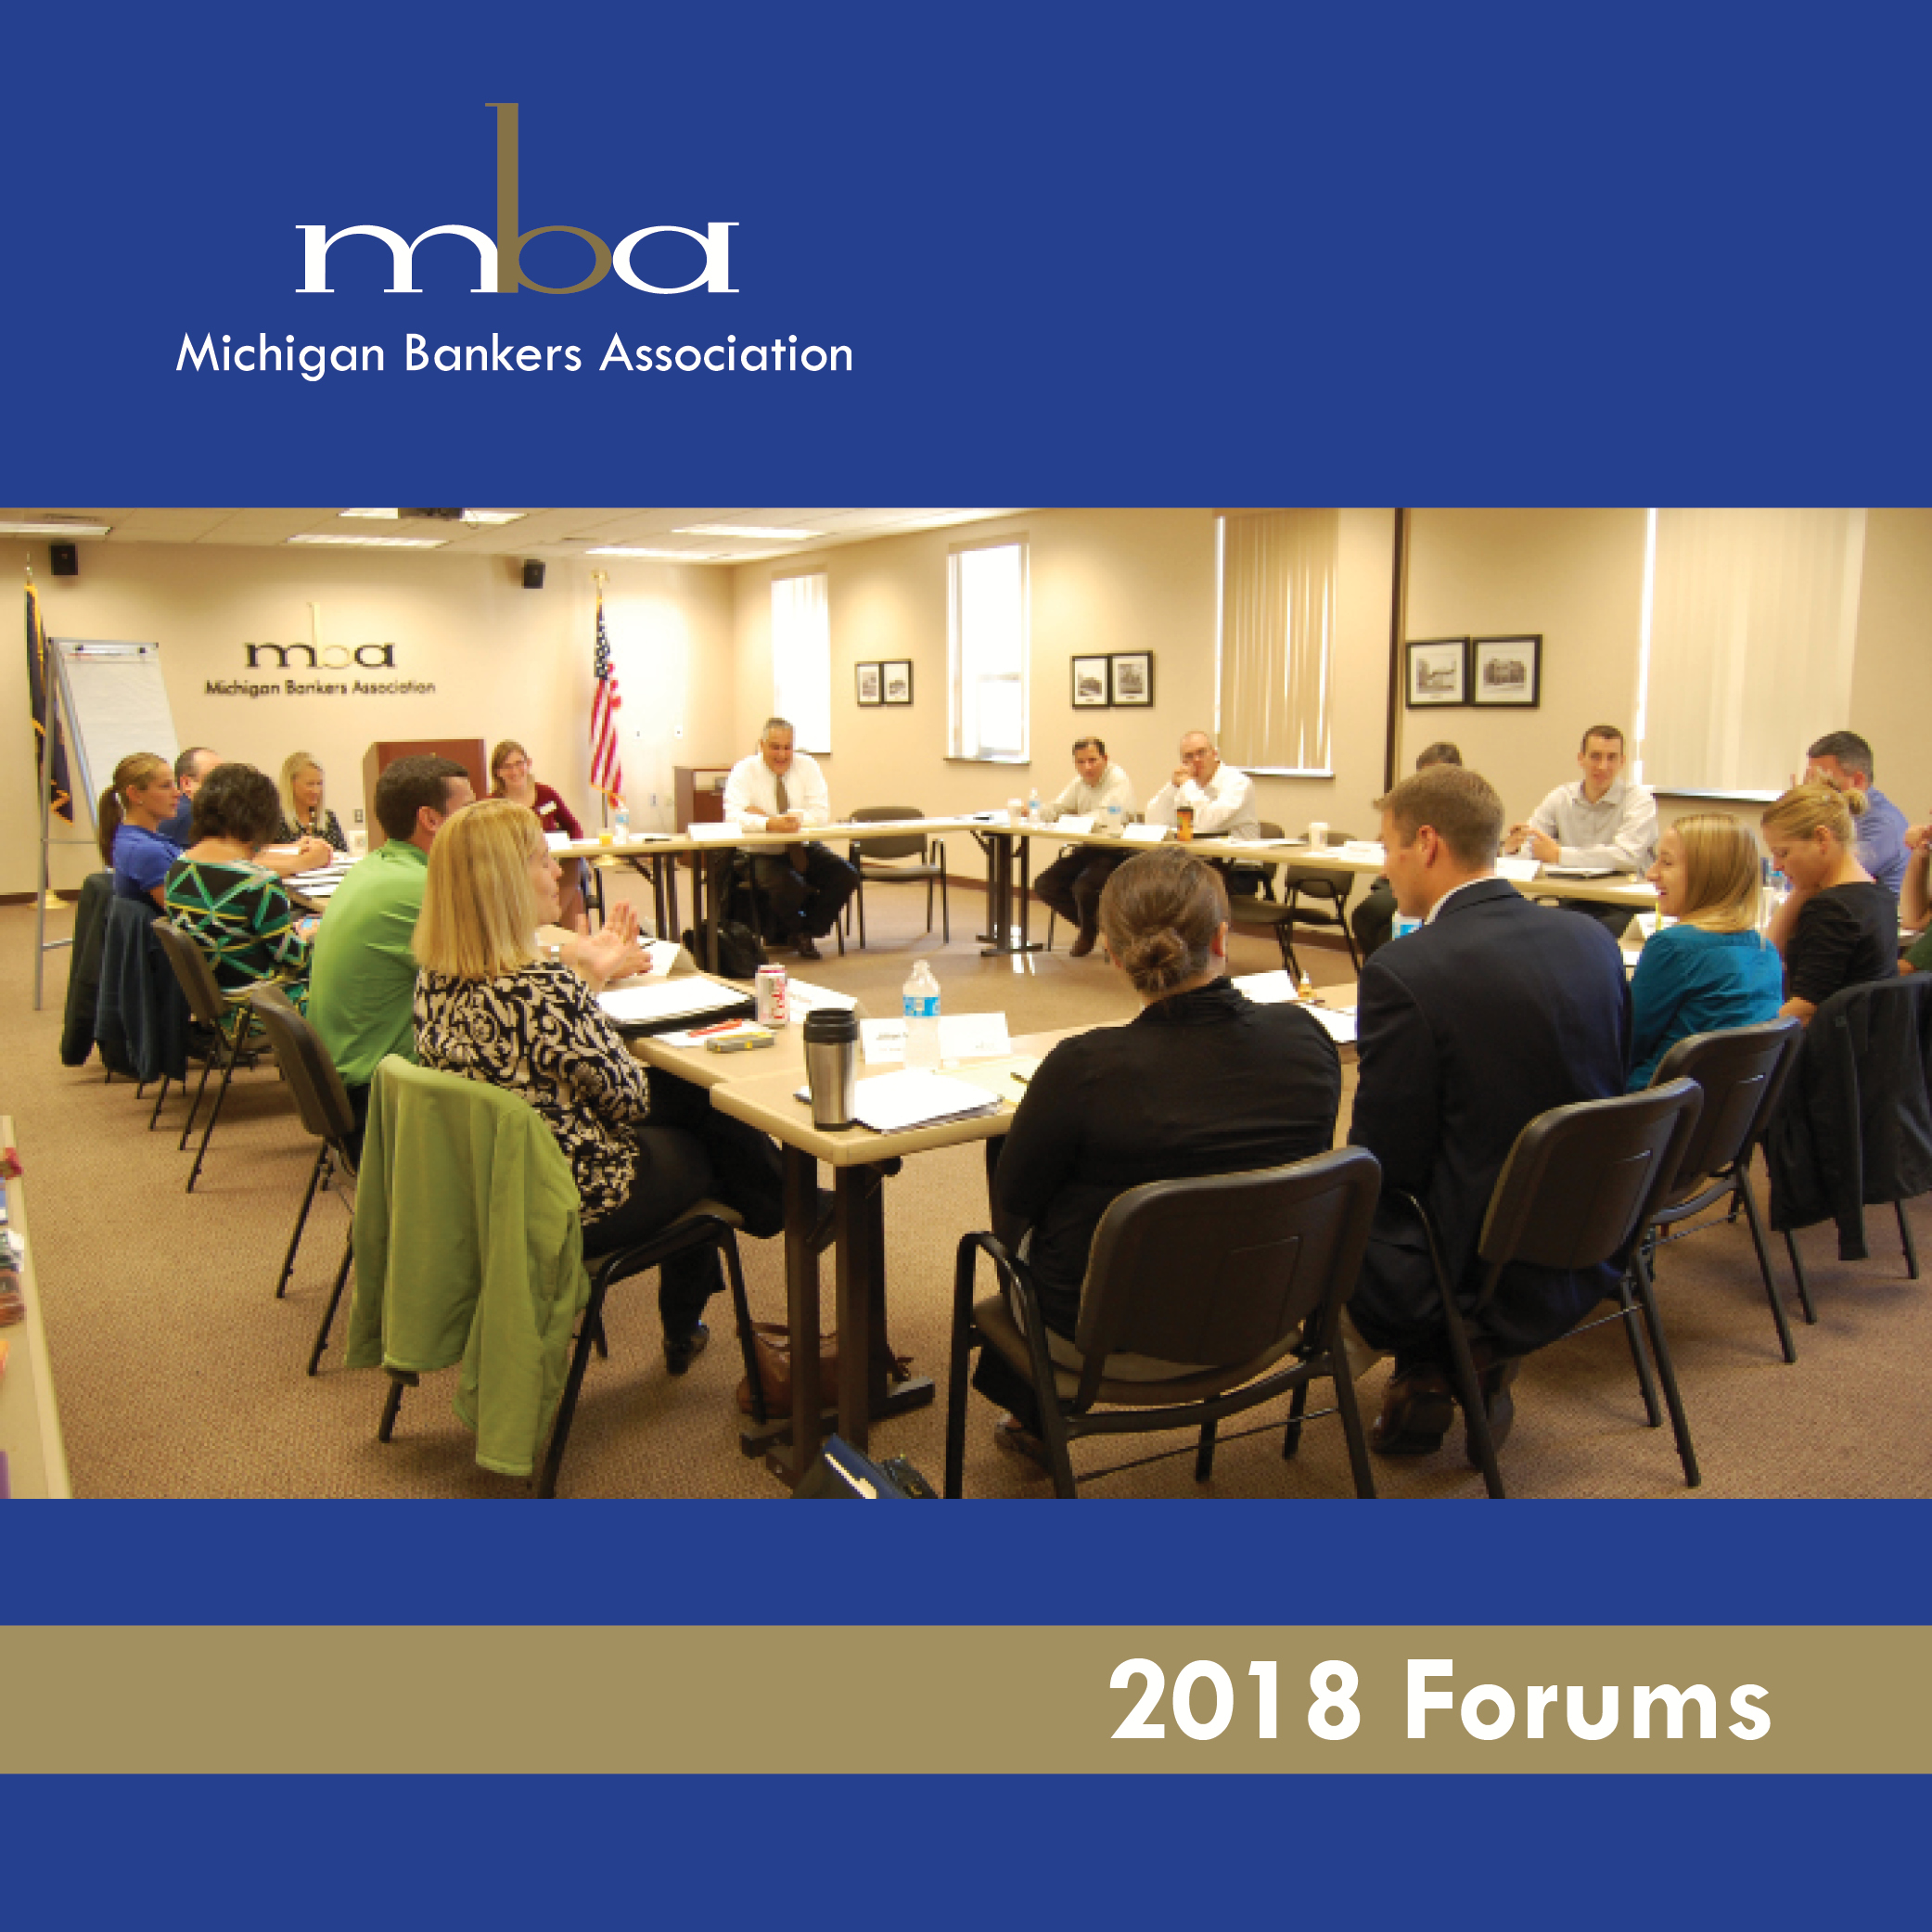 Marketing Forum 03/27/18